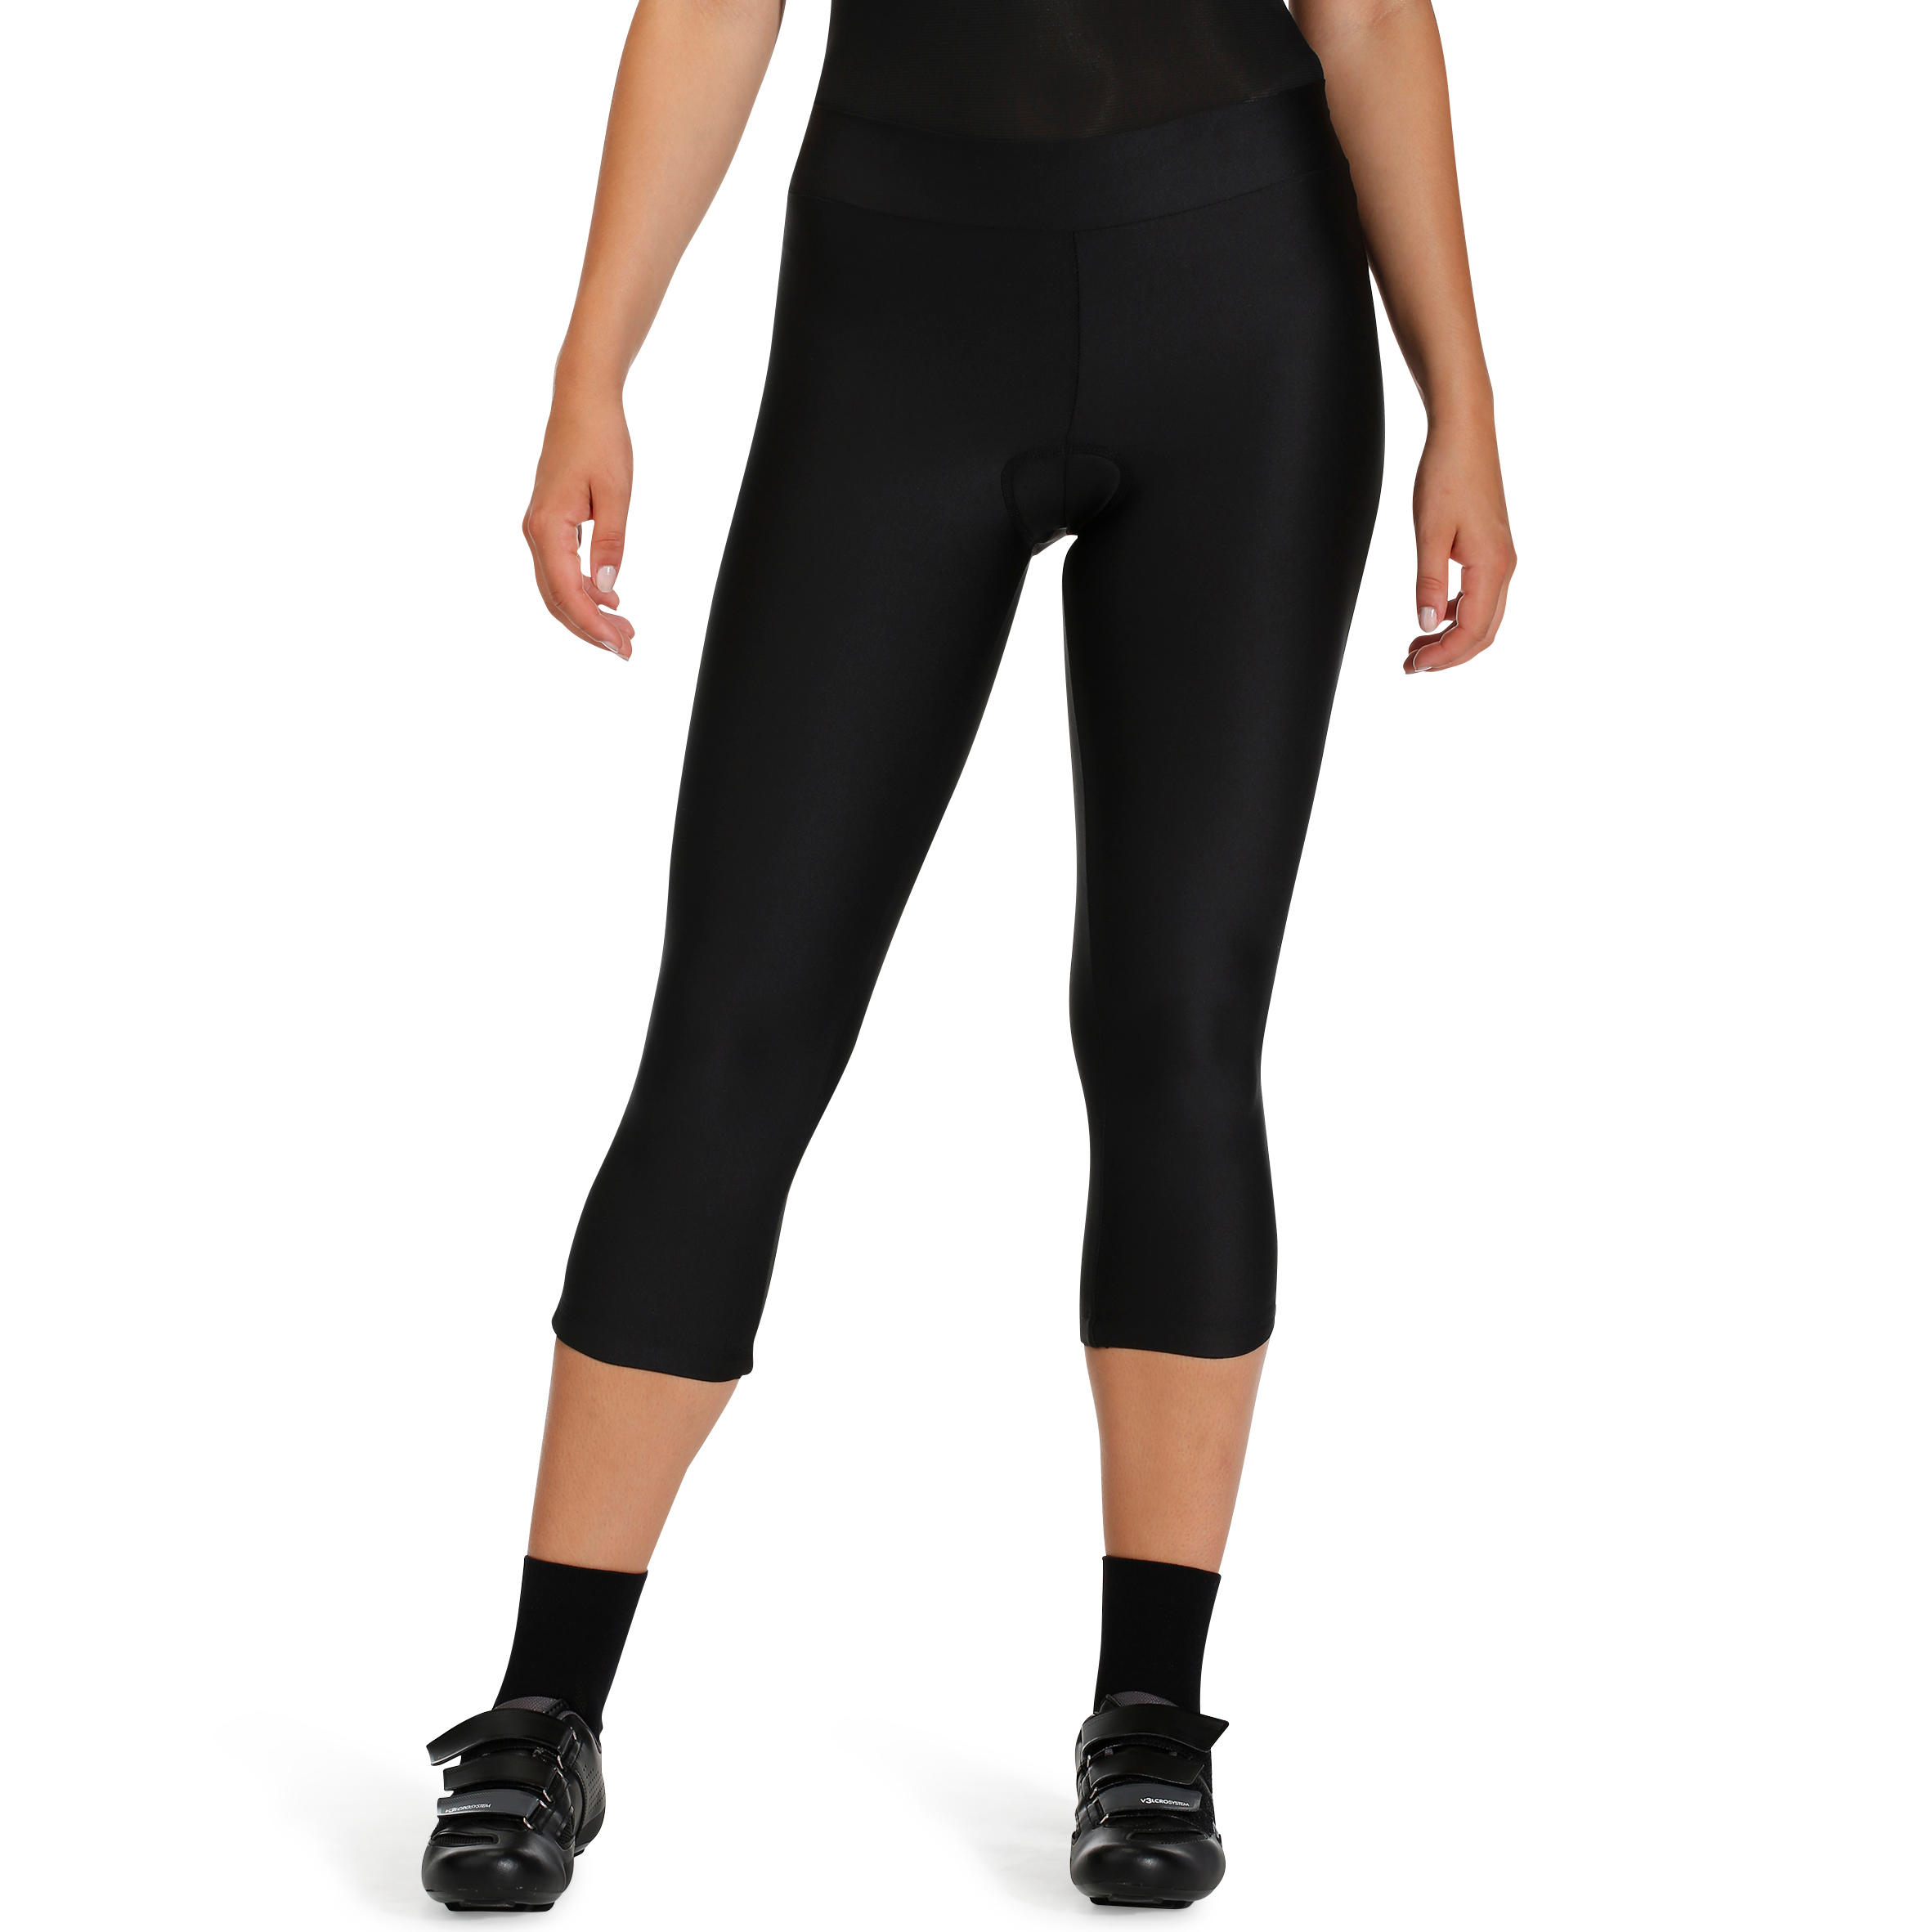 ST100 Women's Mountain Biking Crop Bottoms - Black